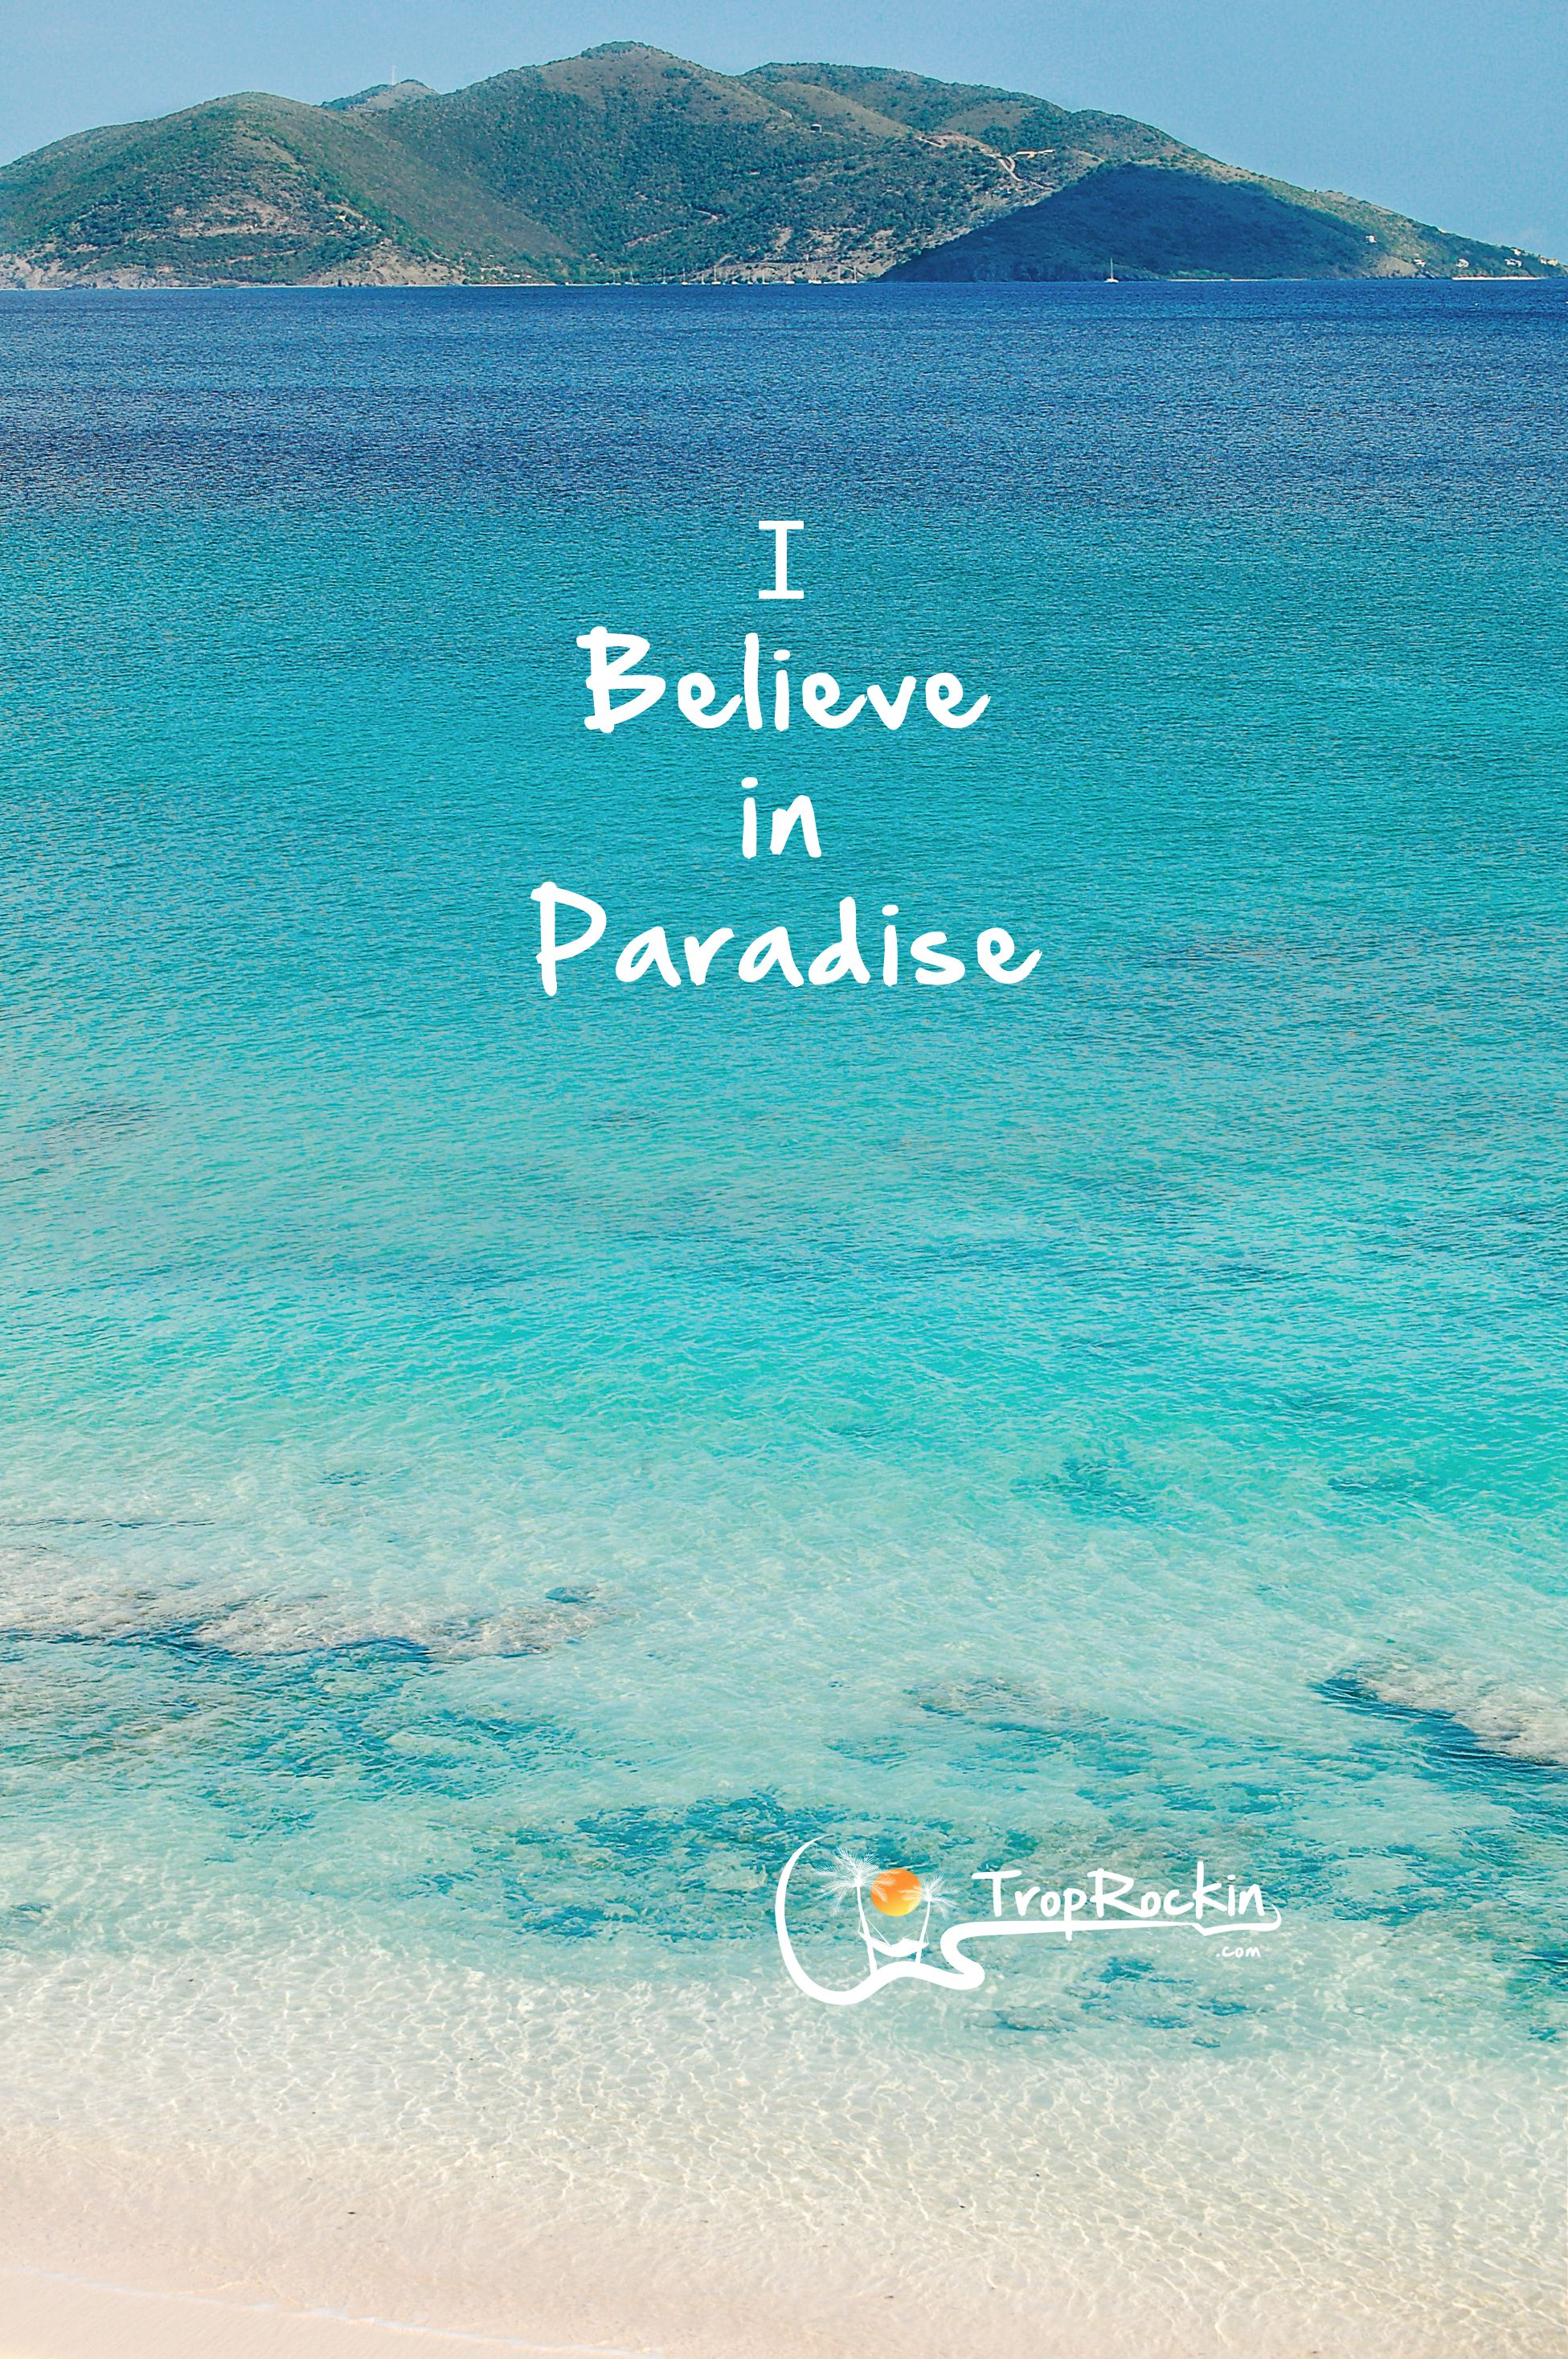 I Believe in Paradise! Yes, I do. Beach Quotes. www ...